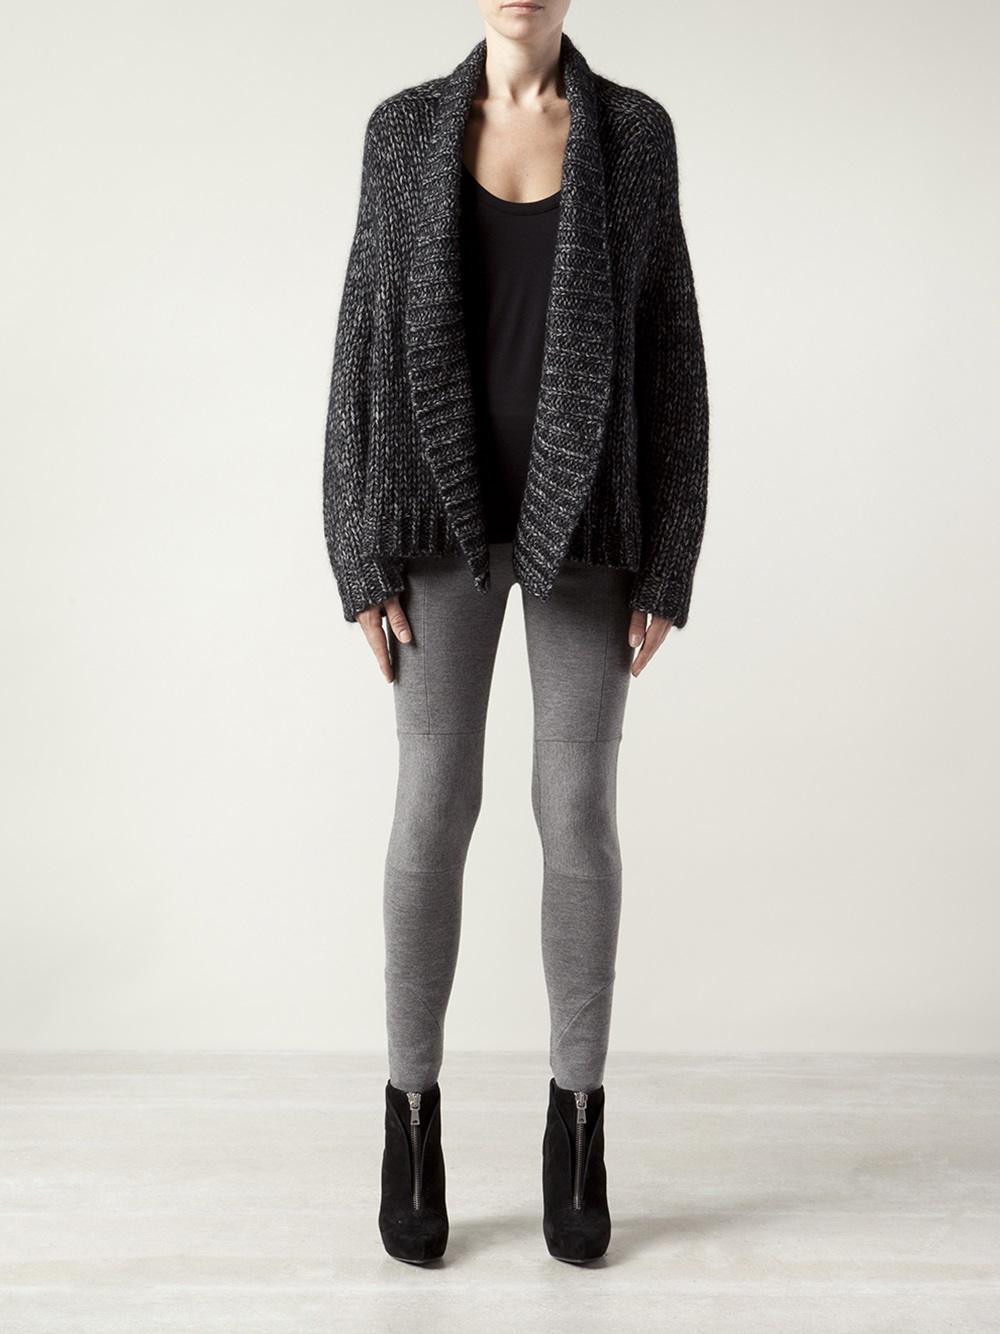 Alexander wang Chunky Knit Cardigan in Black | Lyst